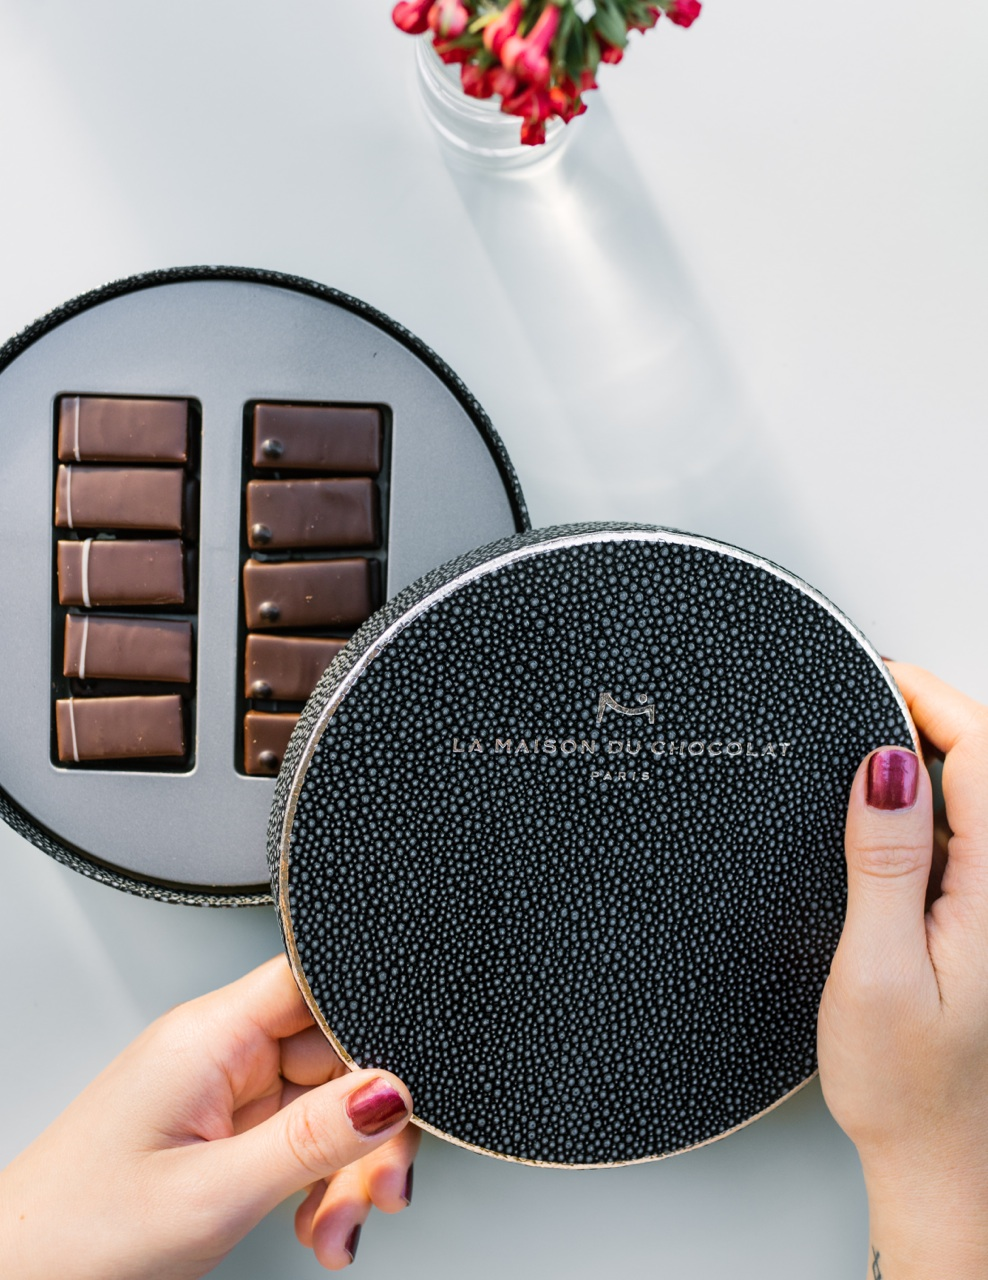 La Maison du Chocolat Petrossian Collaboration